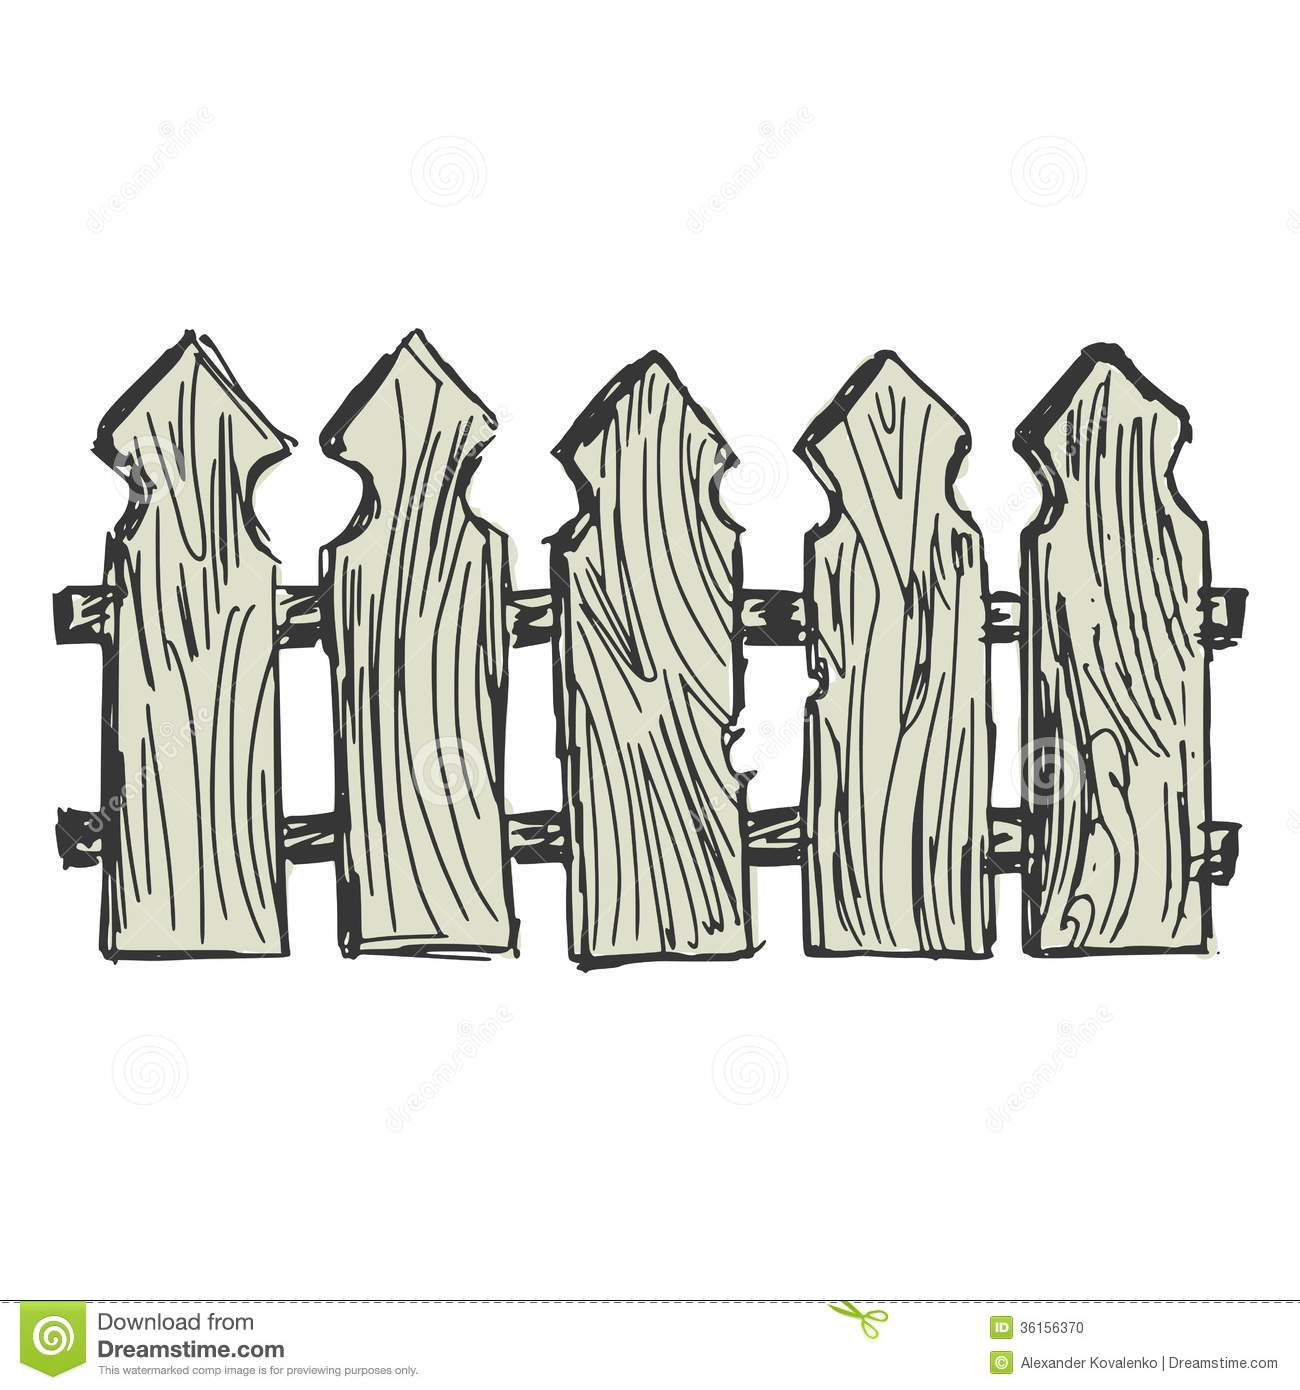 Hand drawn, cartoon, sketch illustration of wooden fence